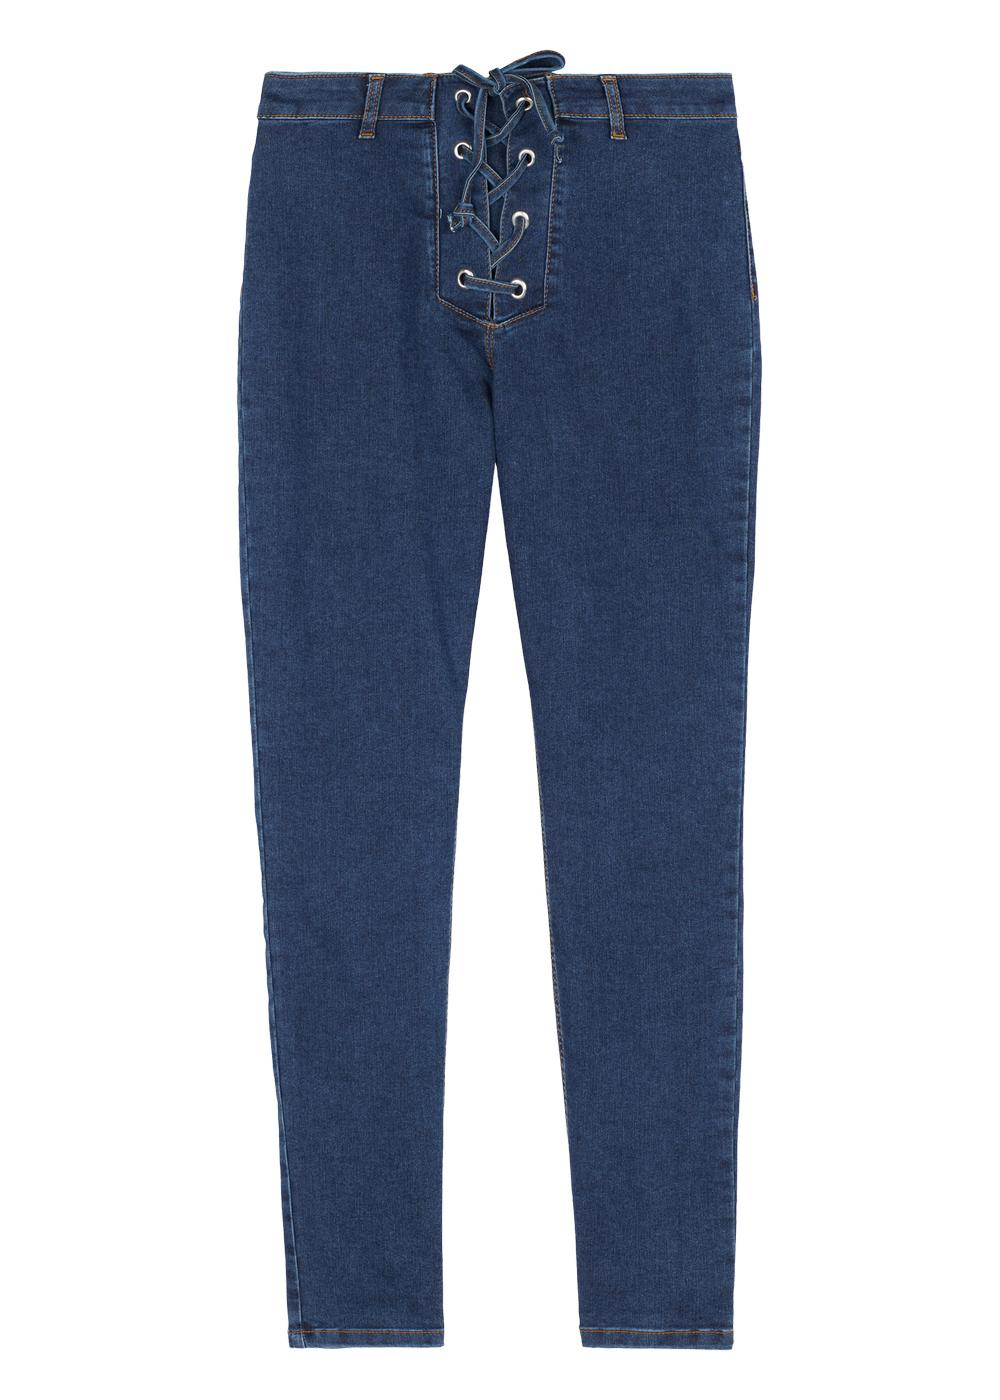 Denim leggings with crisscross pattern and detail at the waist